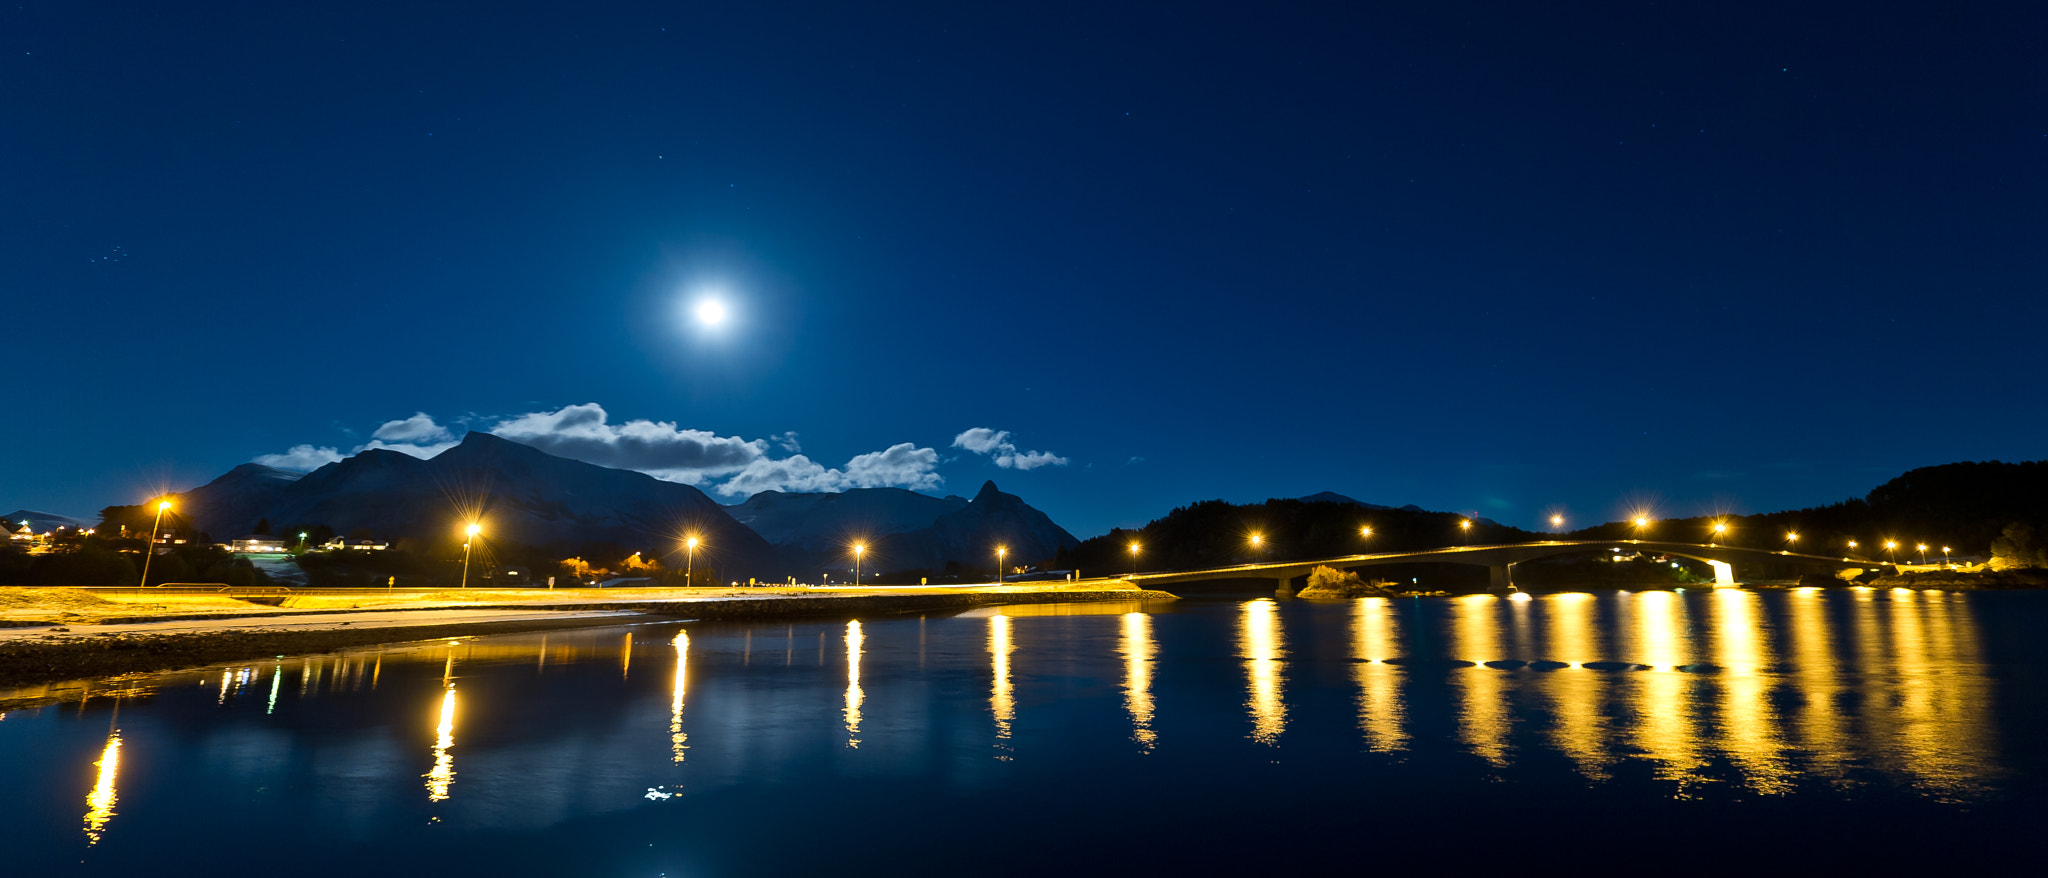 Photograph Moon night. by Geir Magne  Sætre on 500px